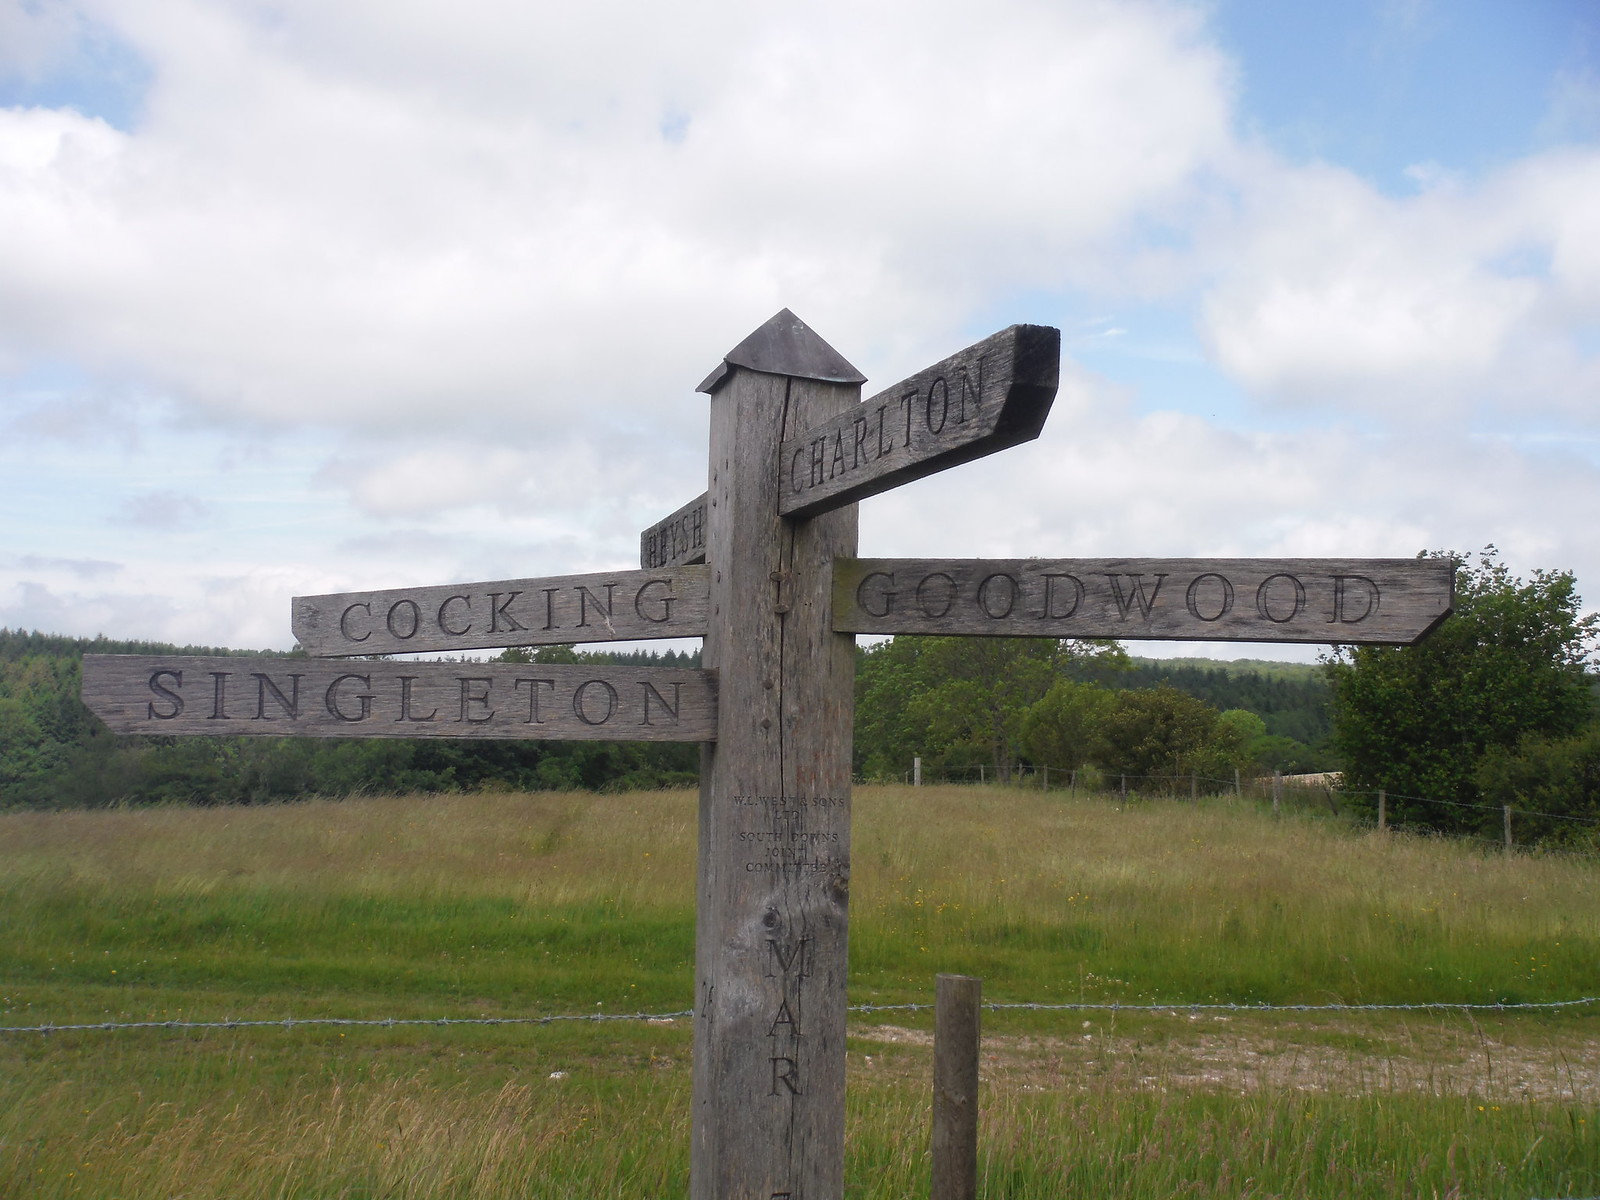 signpost SWC Walk 239 Halnaker to Chichester via Cass Sculpture Park and Goodwood